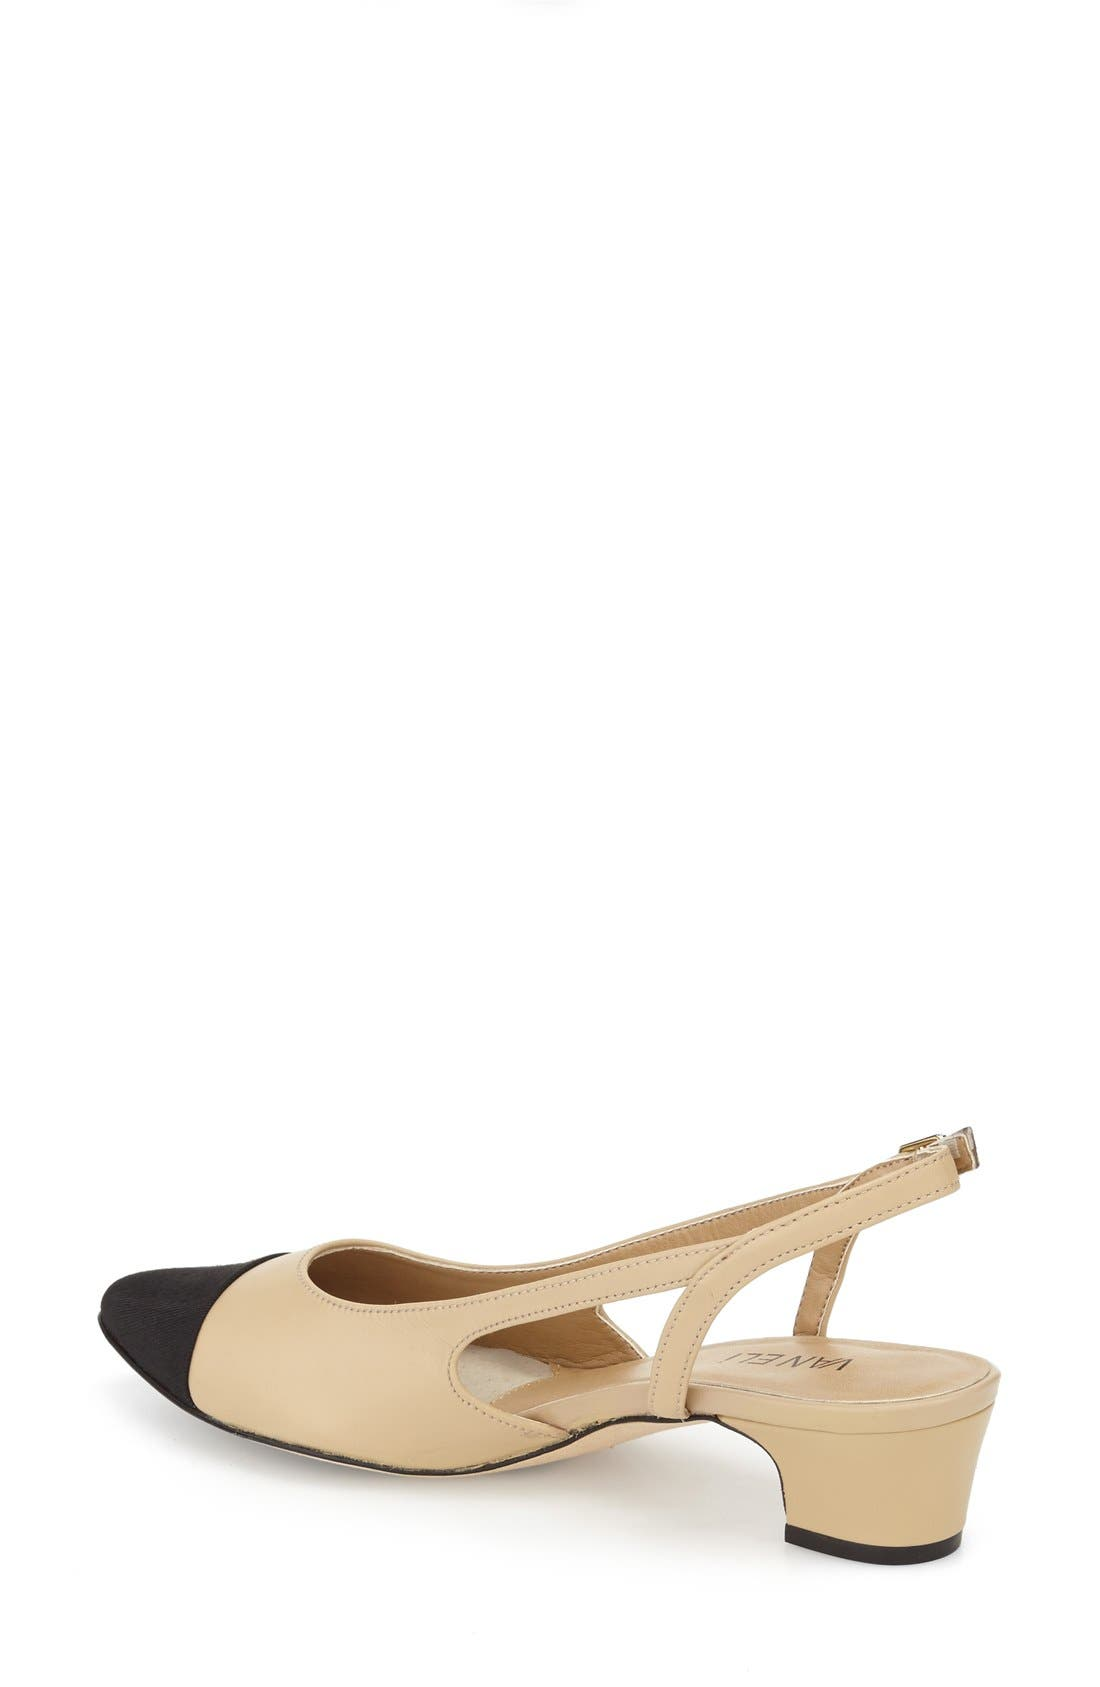 Alternate Image 2  - VANELi 'Aliz' Slingback Pump (Women)